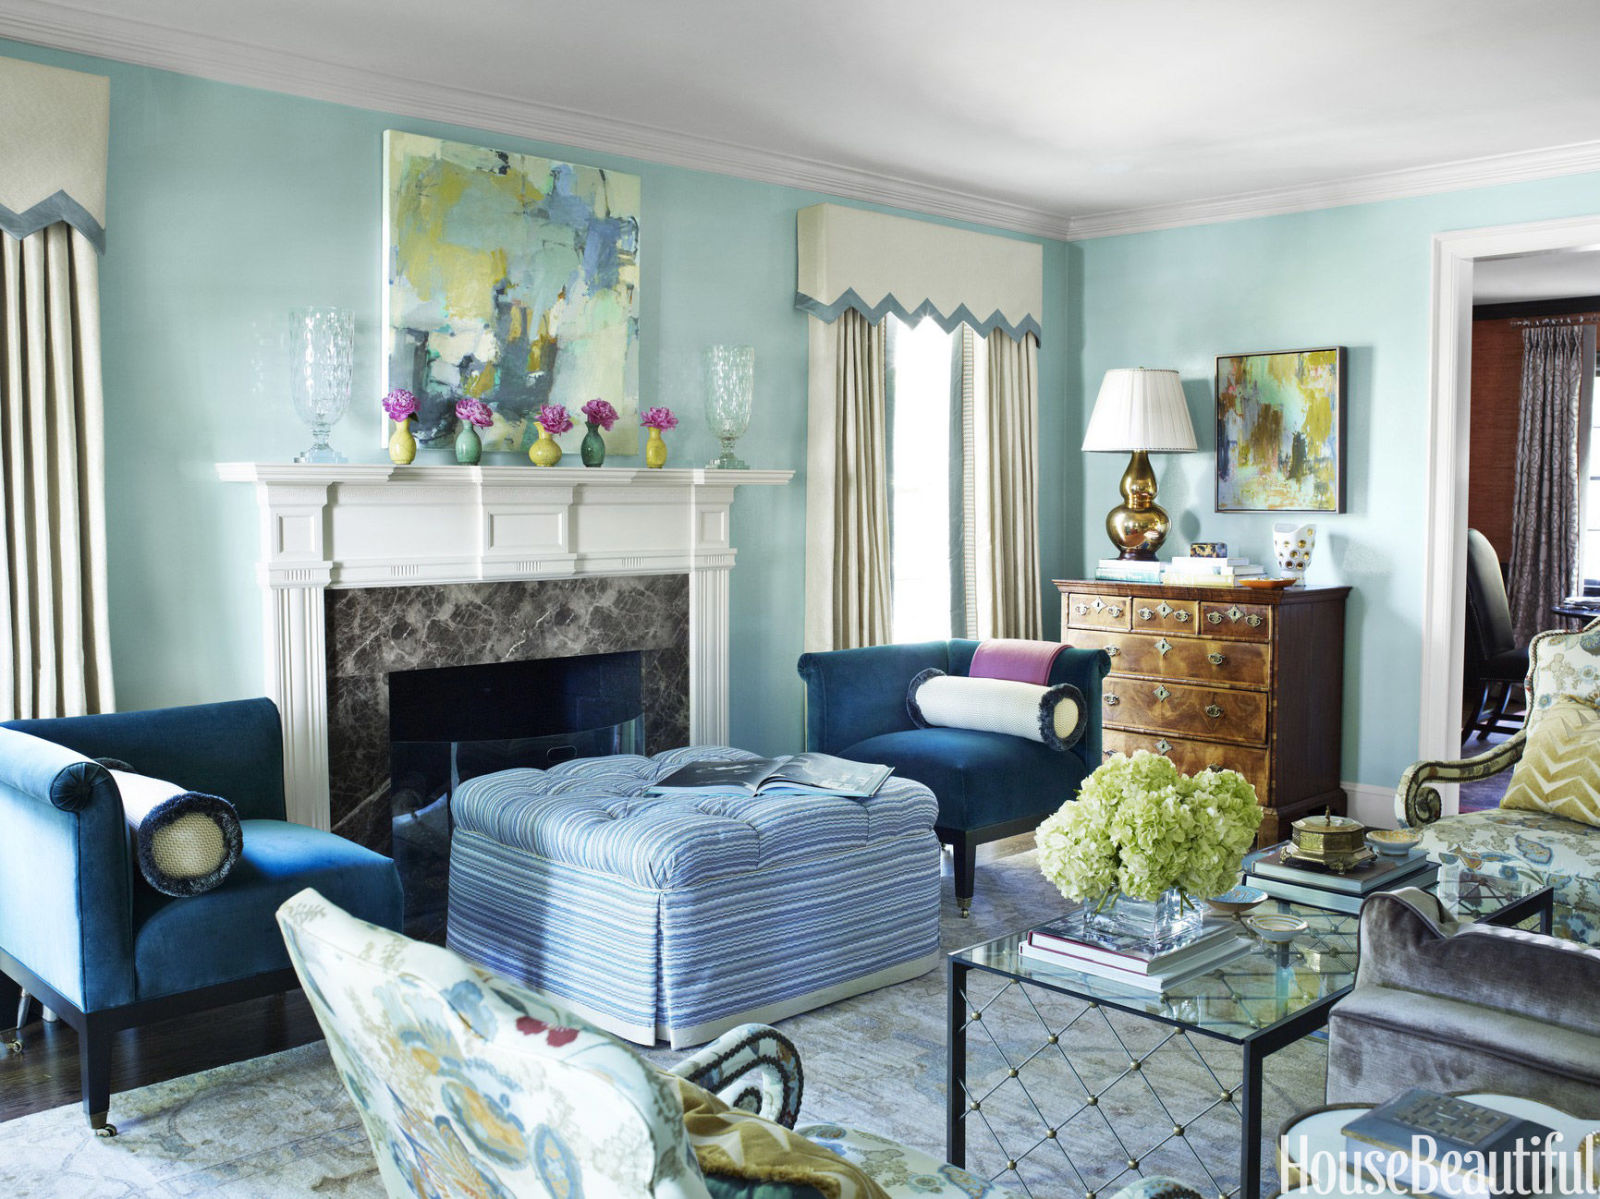 Blue Paint Colors For Living Room 12 best living room color ideas - paint colors for living rooms